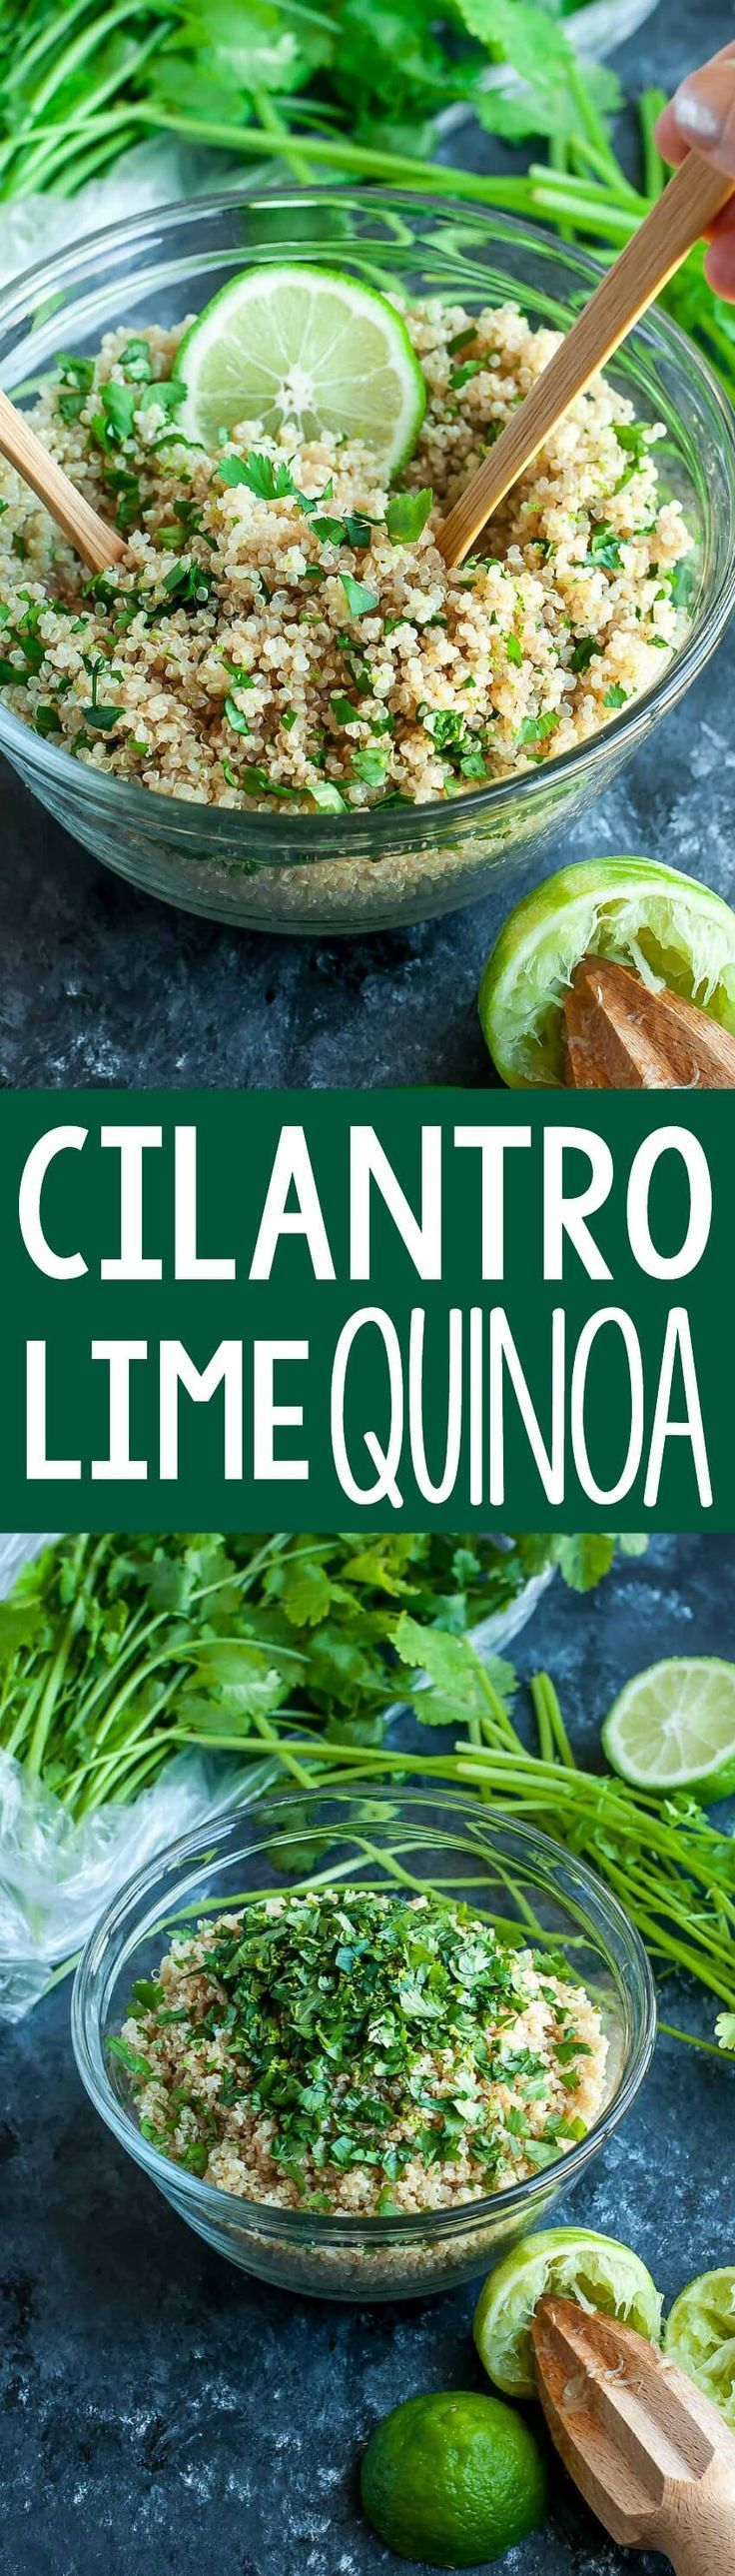 Cilantro Lime Quinoa - 3 cups of fluffy quinoa with cilantro and lime! Gloriously gluten-free, vegan, and just plain delicious! Makes a great side dish or burrito bowl base.